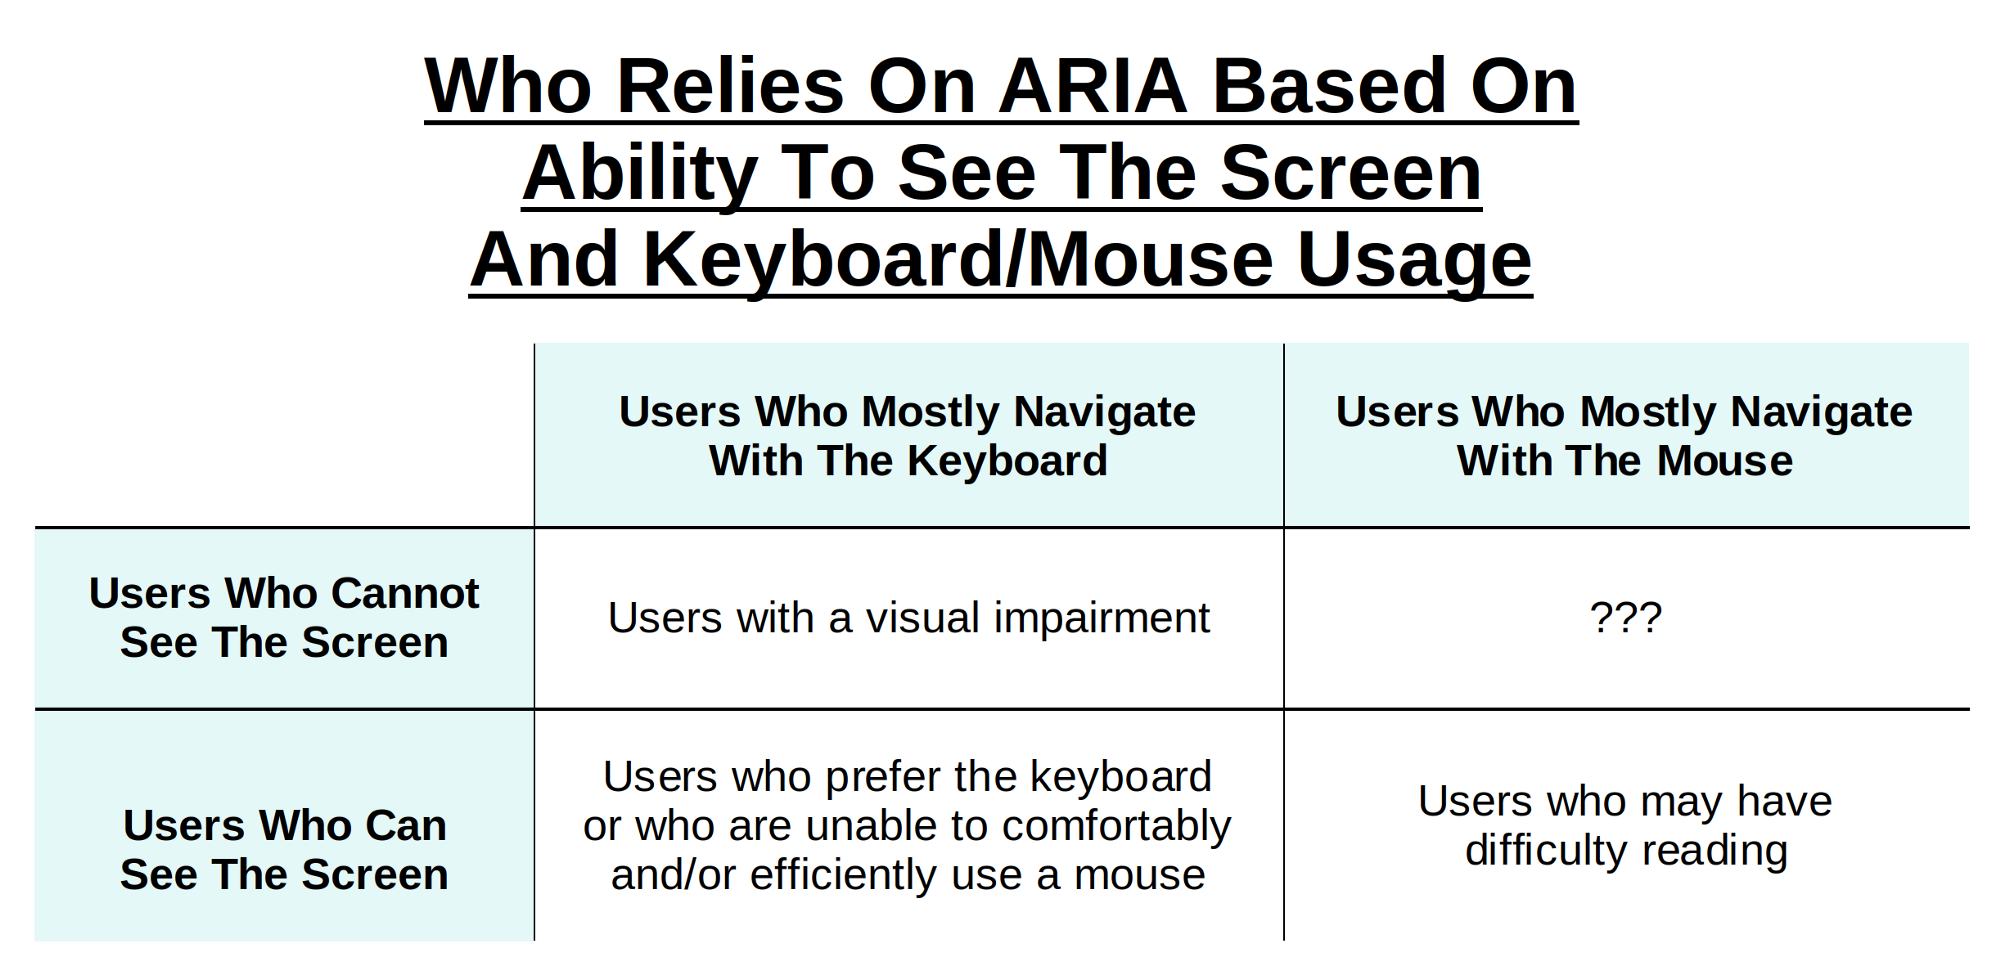 """Table entitled """"Who Relies On ARIA Based On Ability To See The Screen And Keyboard/Mouse Usage."""" The table has the column headers """"Users Who Mostly Navigate With The Keyboard"""" and """"Users Who Mostly Navigate With The Mouse."""" The table has the row headers """"Users Who Cannot See the Screen"""" and """"Users Who Can See the Screen."""" The contents of the cells is discussed in detail below; the table is merely a visual aid, not the sole conveyance of the information it contains."""